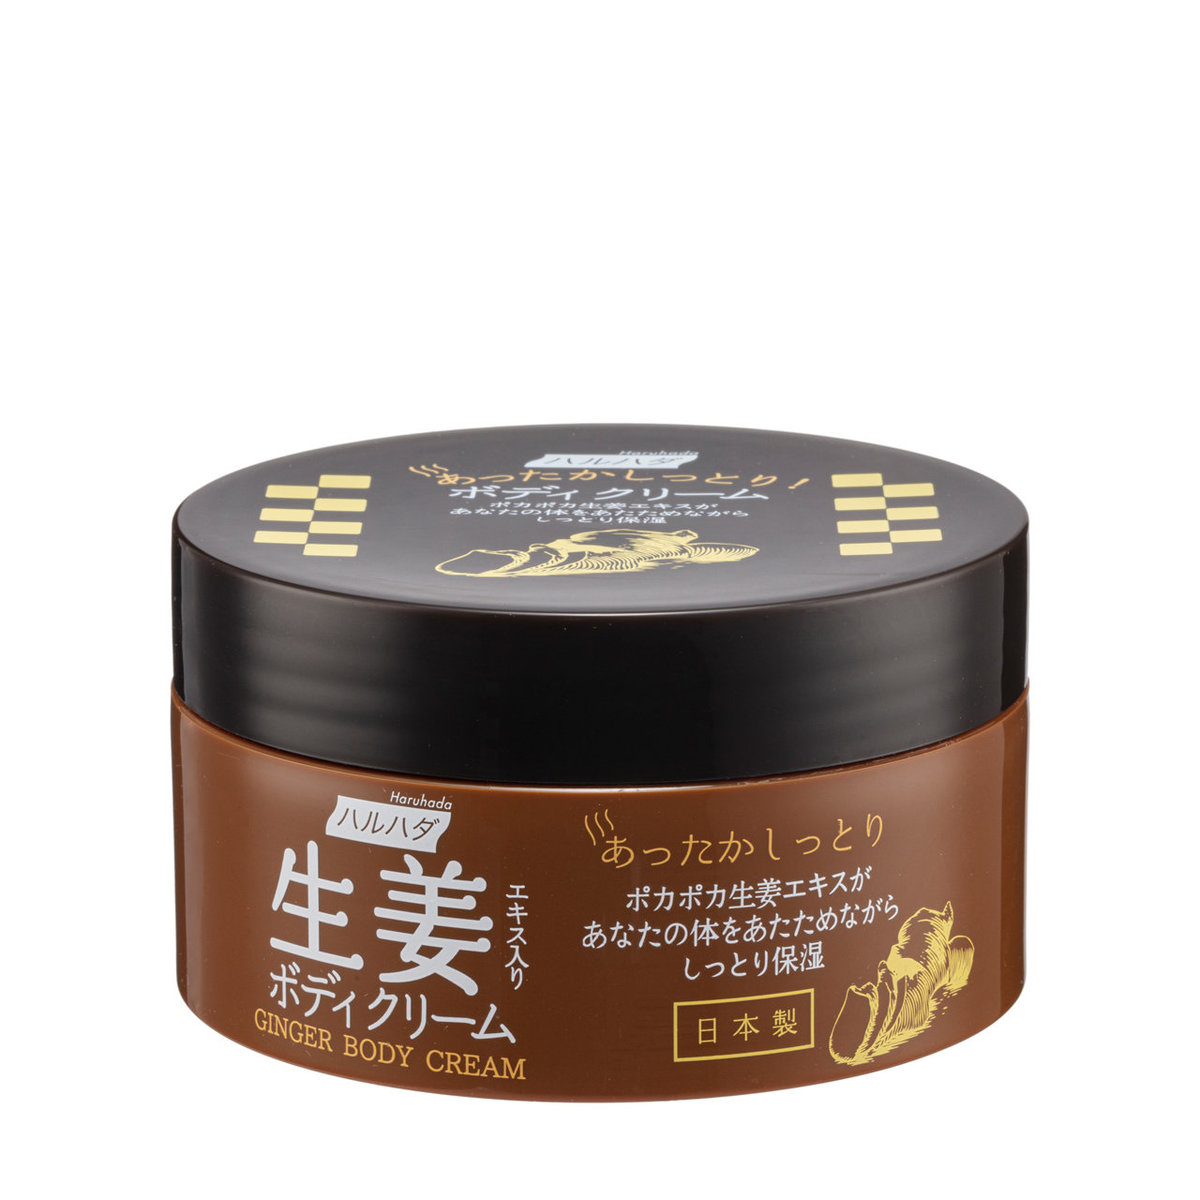 HARUHADA Ginger Body Cream